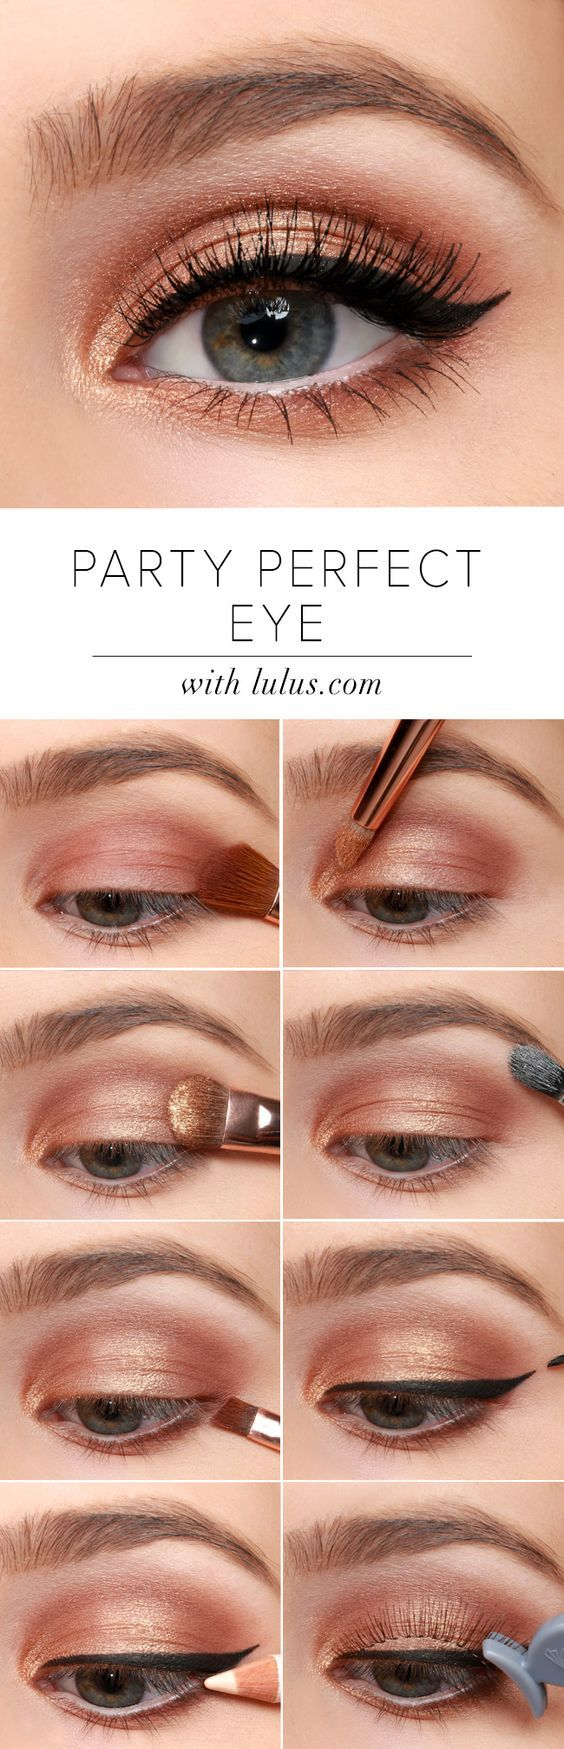 Ideas for wedding day make-up - wedding make up inspiration. Bronze is big. For daytime or evening, The Nudes Palette can create an array of natural beauty looks with its 12 taupe, brown, and golden shades. Add winged liner to lend a retro feel to modern eyeshadow.